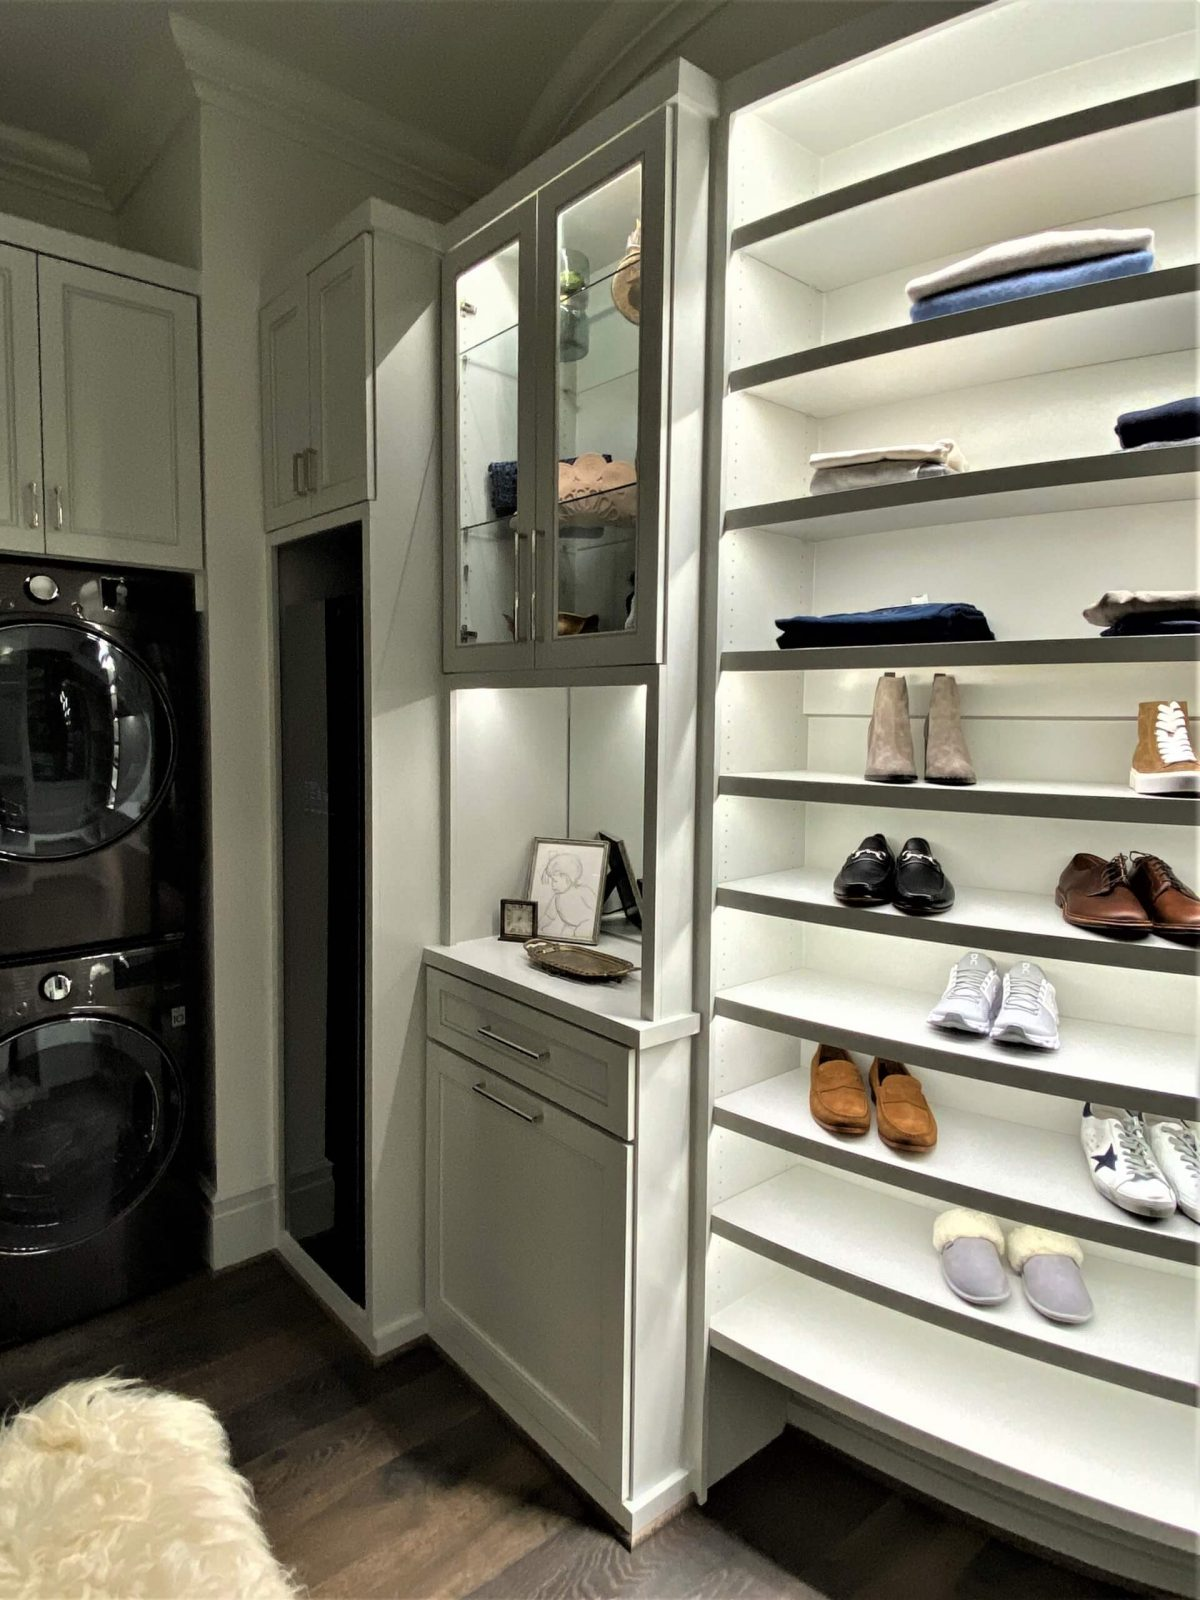 A sample of the work done by The Closet Company in Nashville, TN